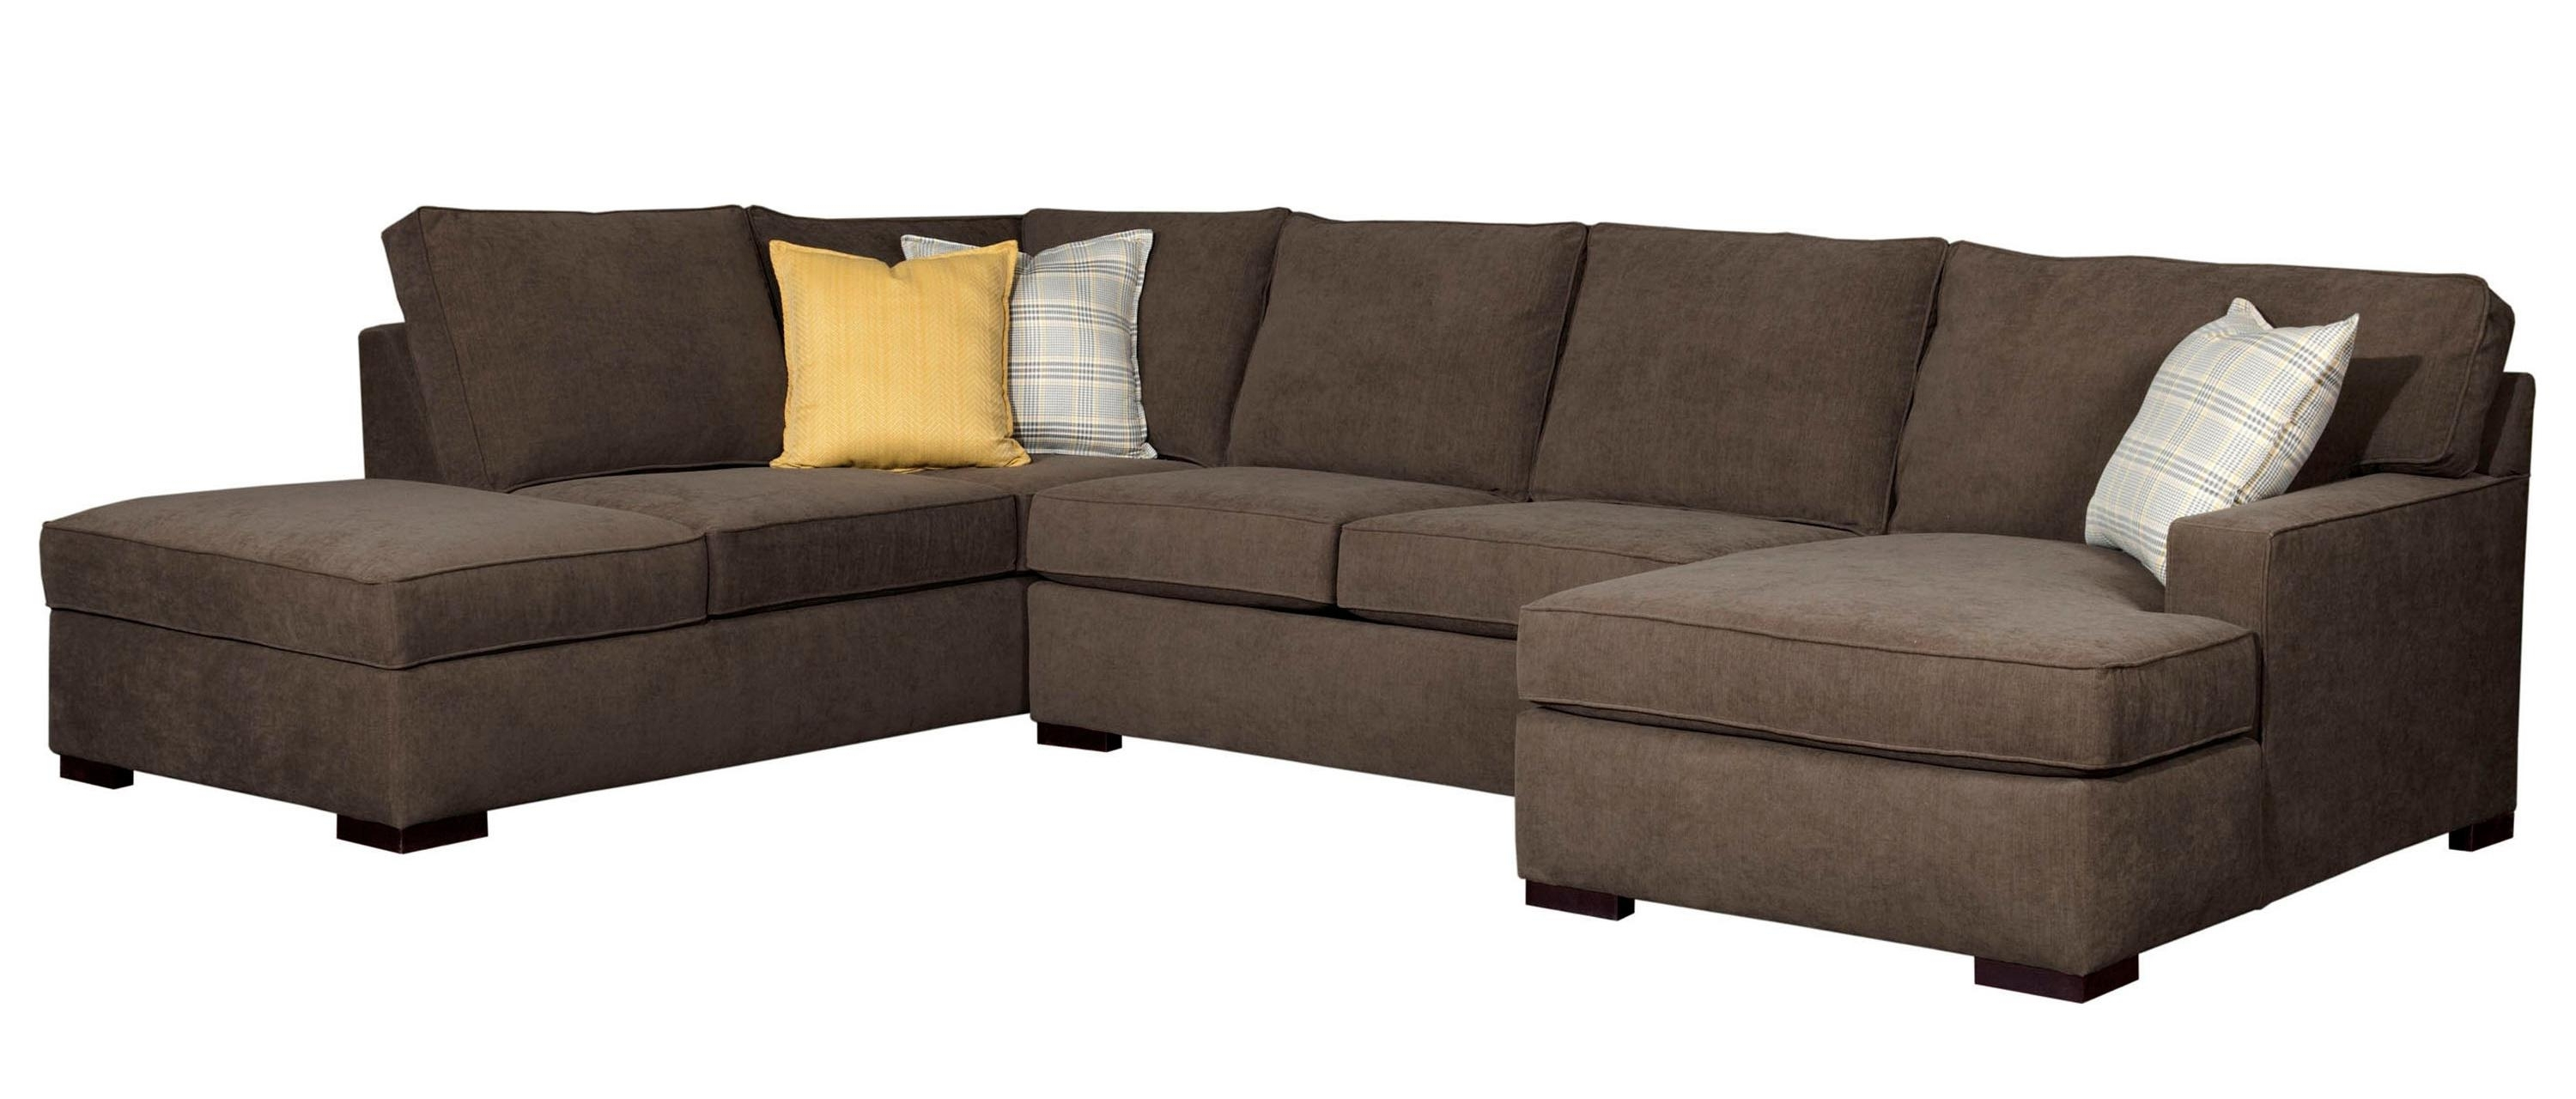 Favorite Broyhill Furniture Raphael Contemporary Sectional Sofa With Laf With Broyhill Sectional Sofas (View 13 of 20)